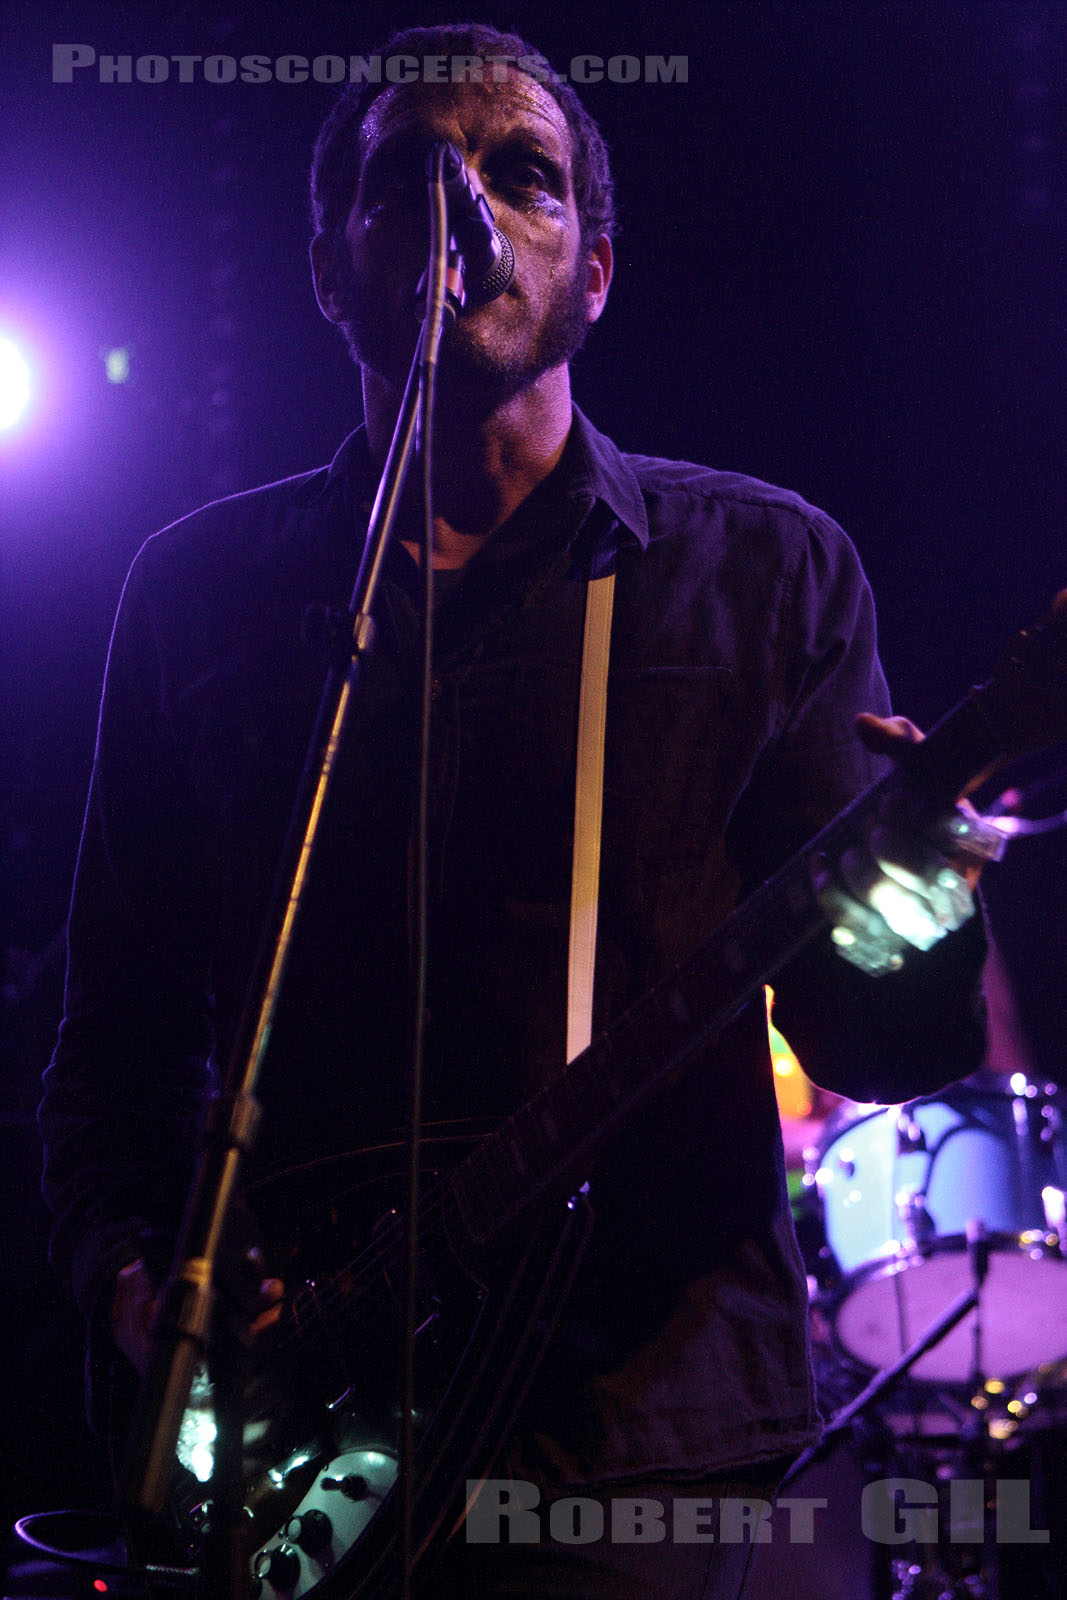 LES BIG BYRD - 2014-09-25 - PARIS - Trabendo